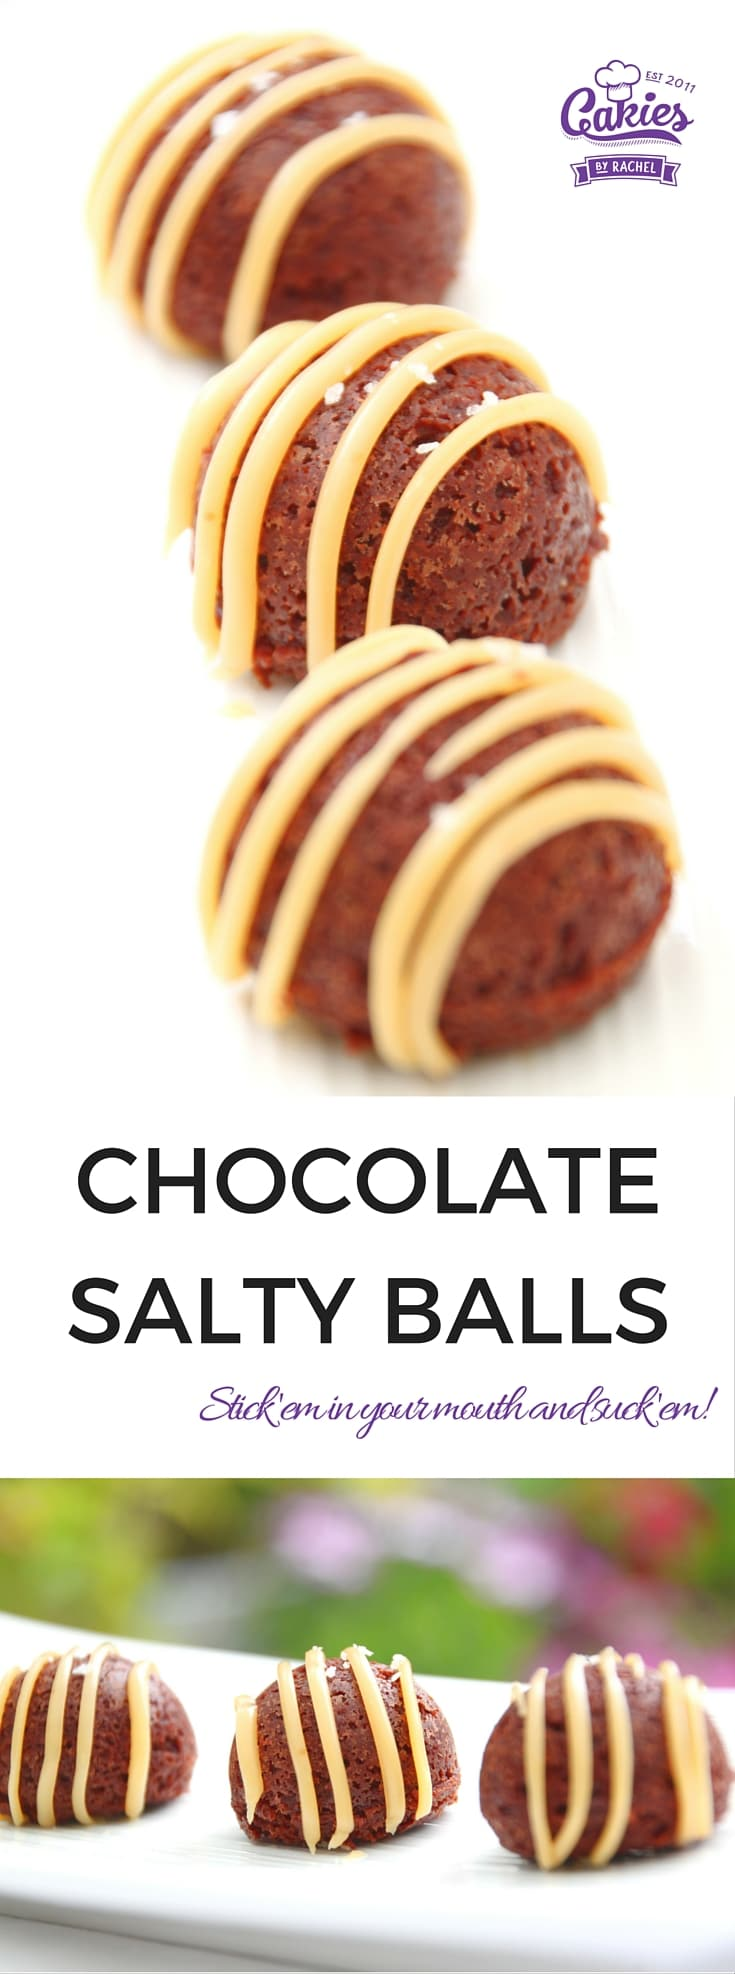 Chocolate Salty Balls Recipe from South Park's Chef